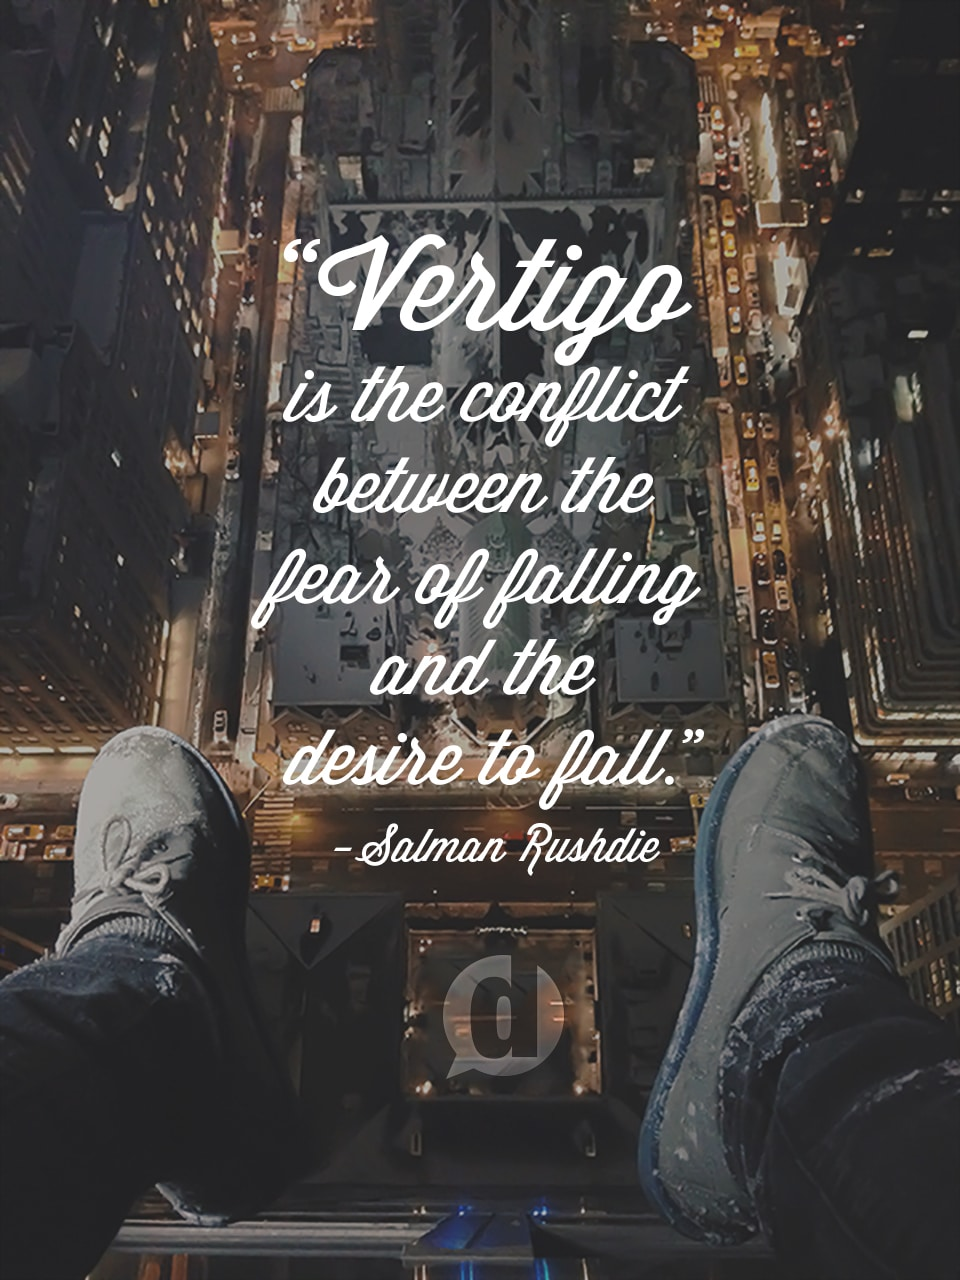 vertigo quote